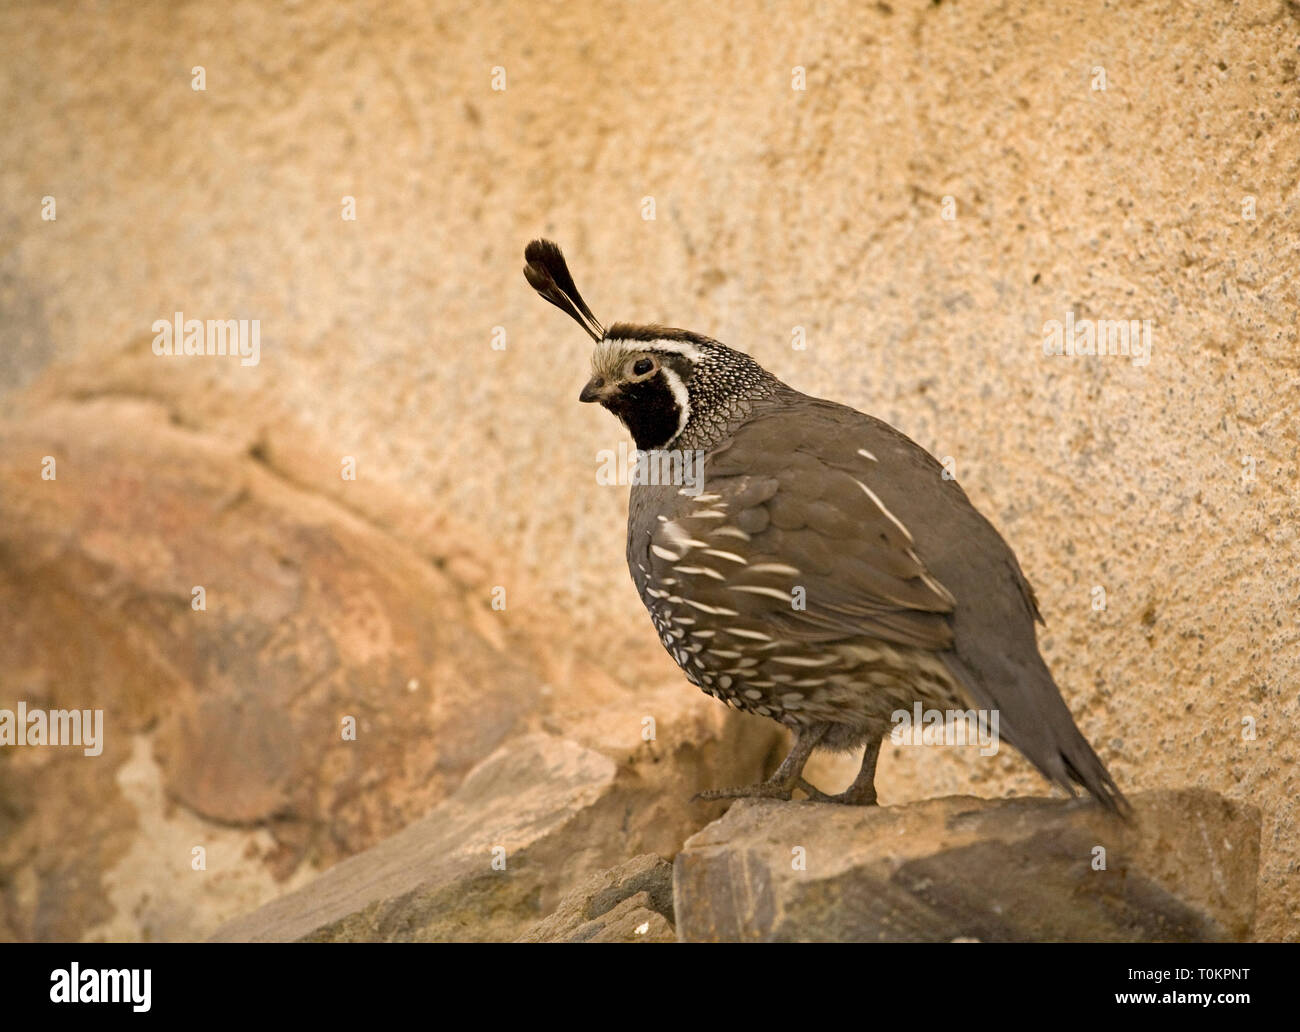 A male California quail, Callipepla californica, in the desert in southern Baja, Mexico - Stock Image